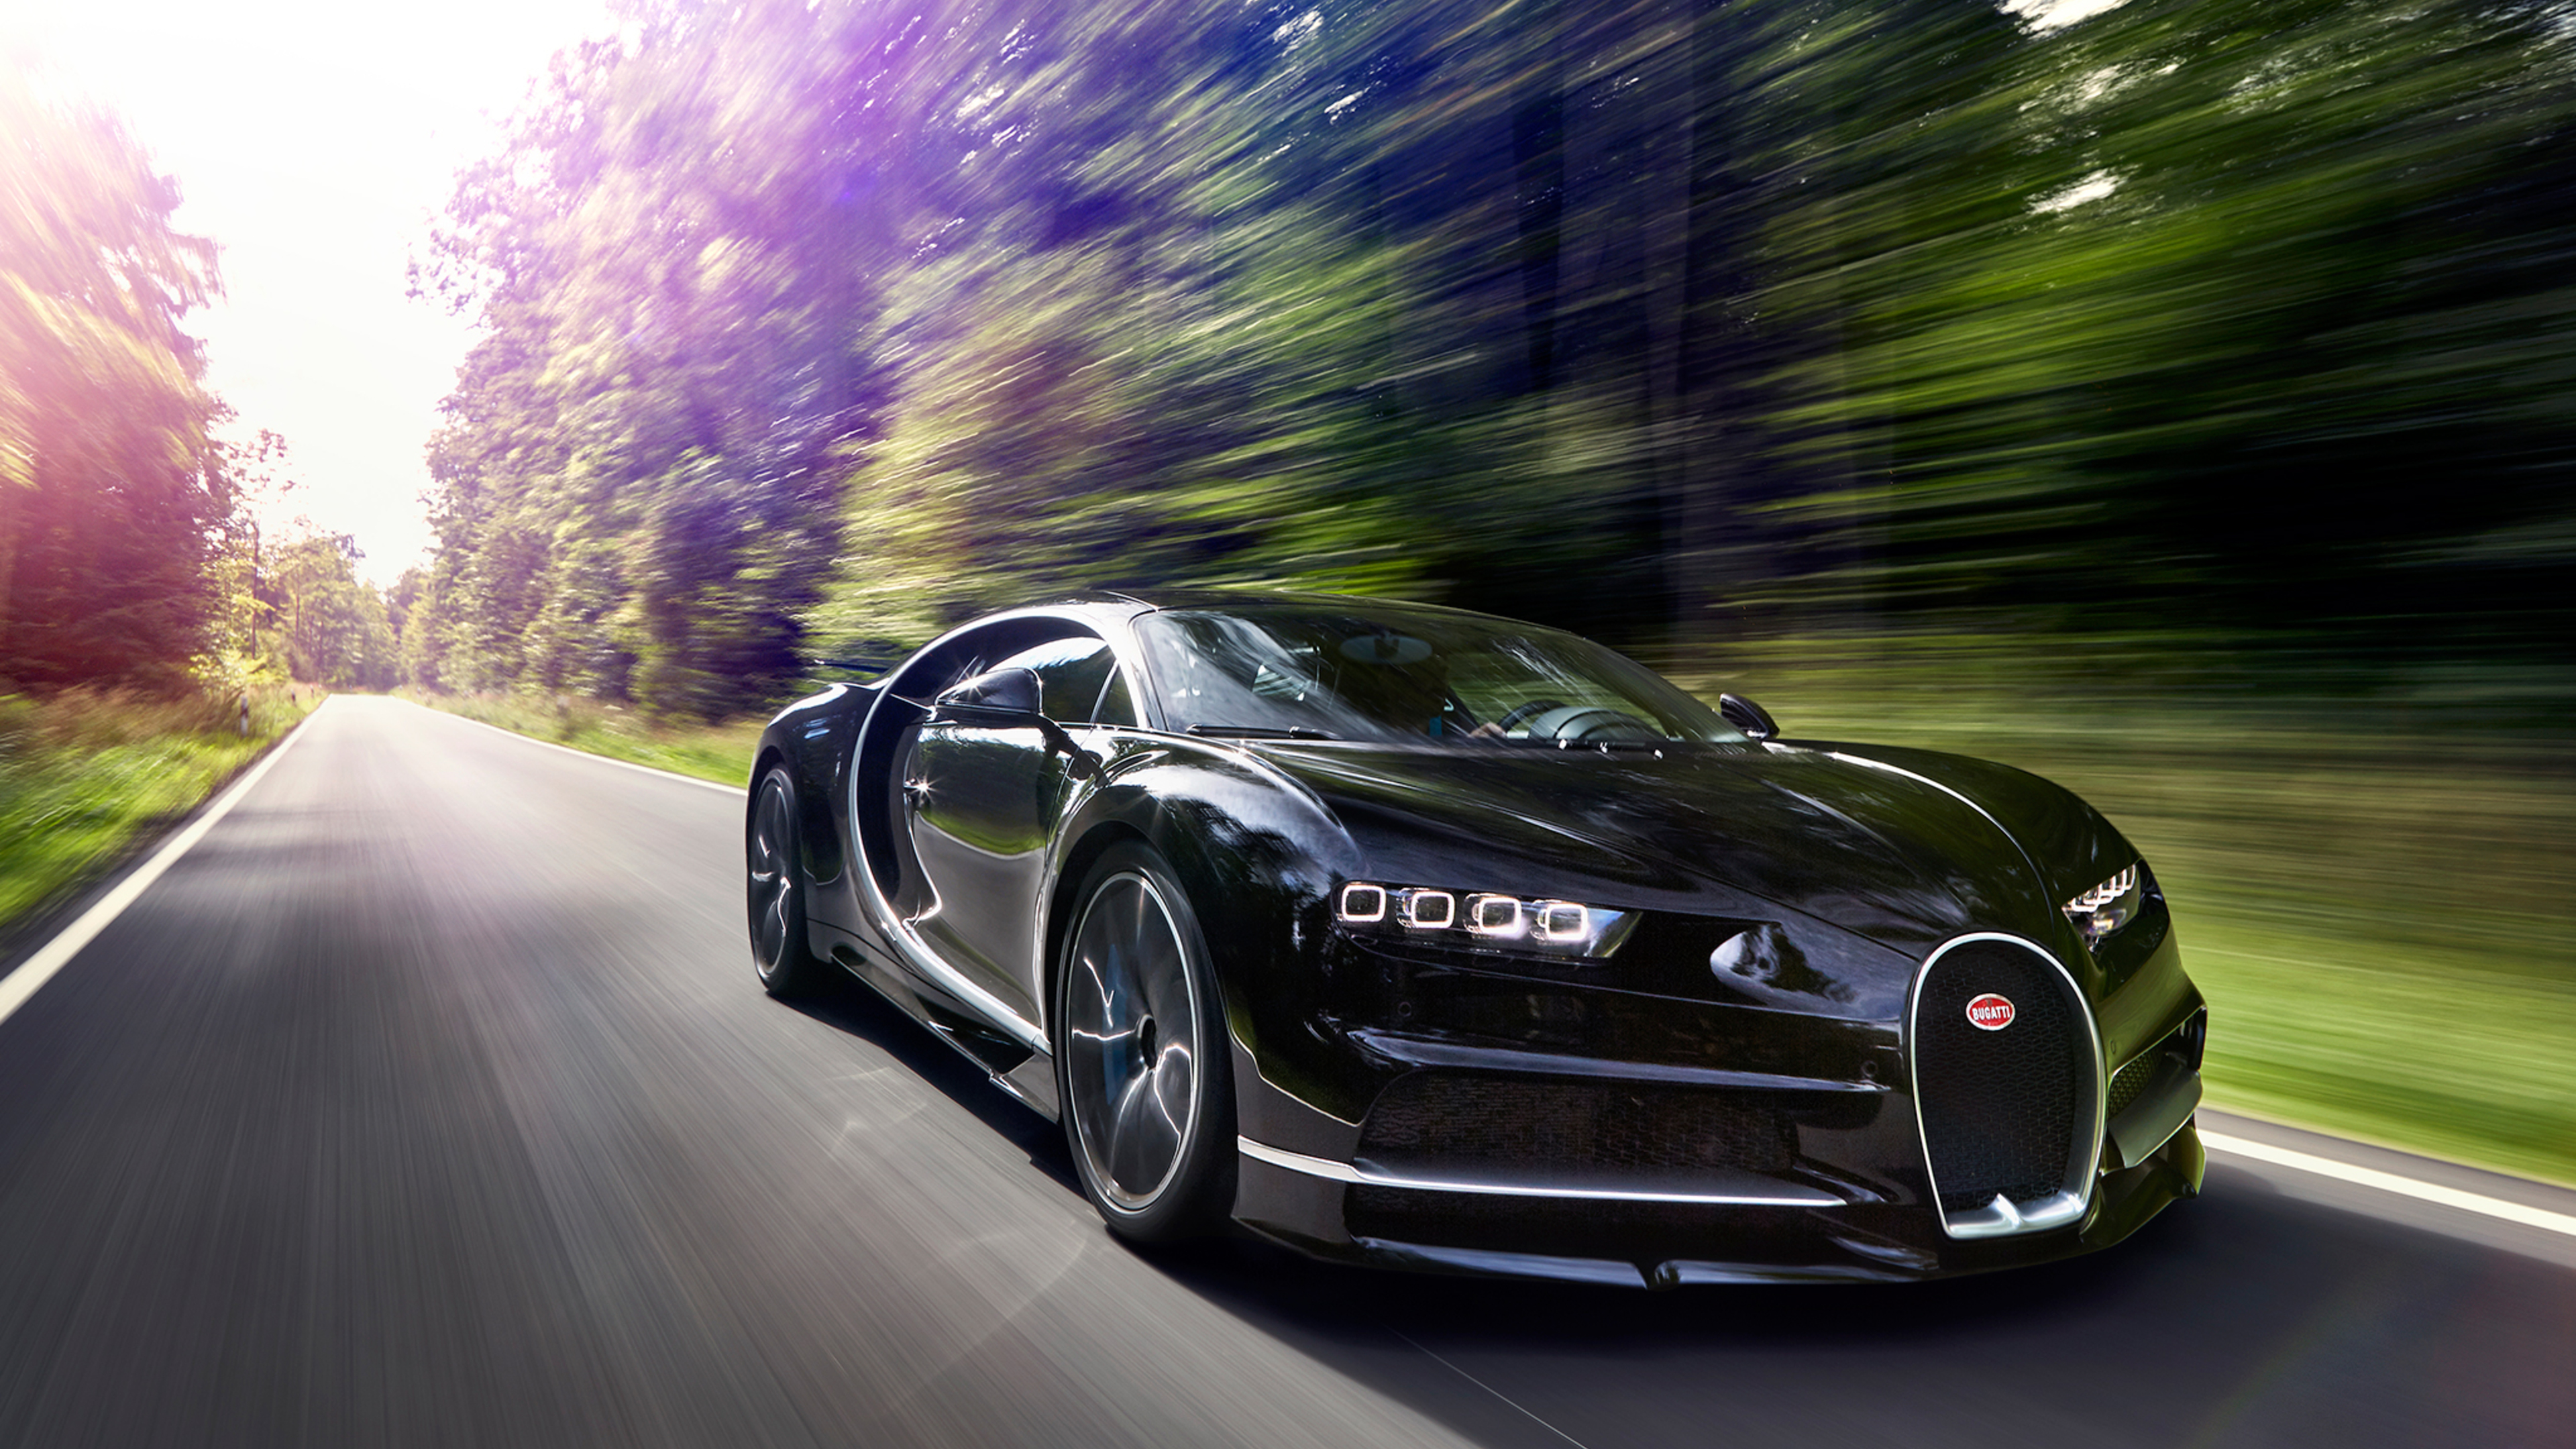 3840x2160 2017 Bugatti Chiron In Motion 4k HD 4k